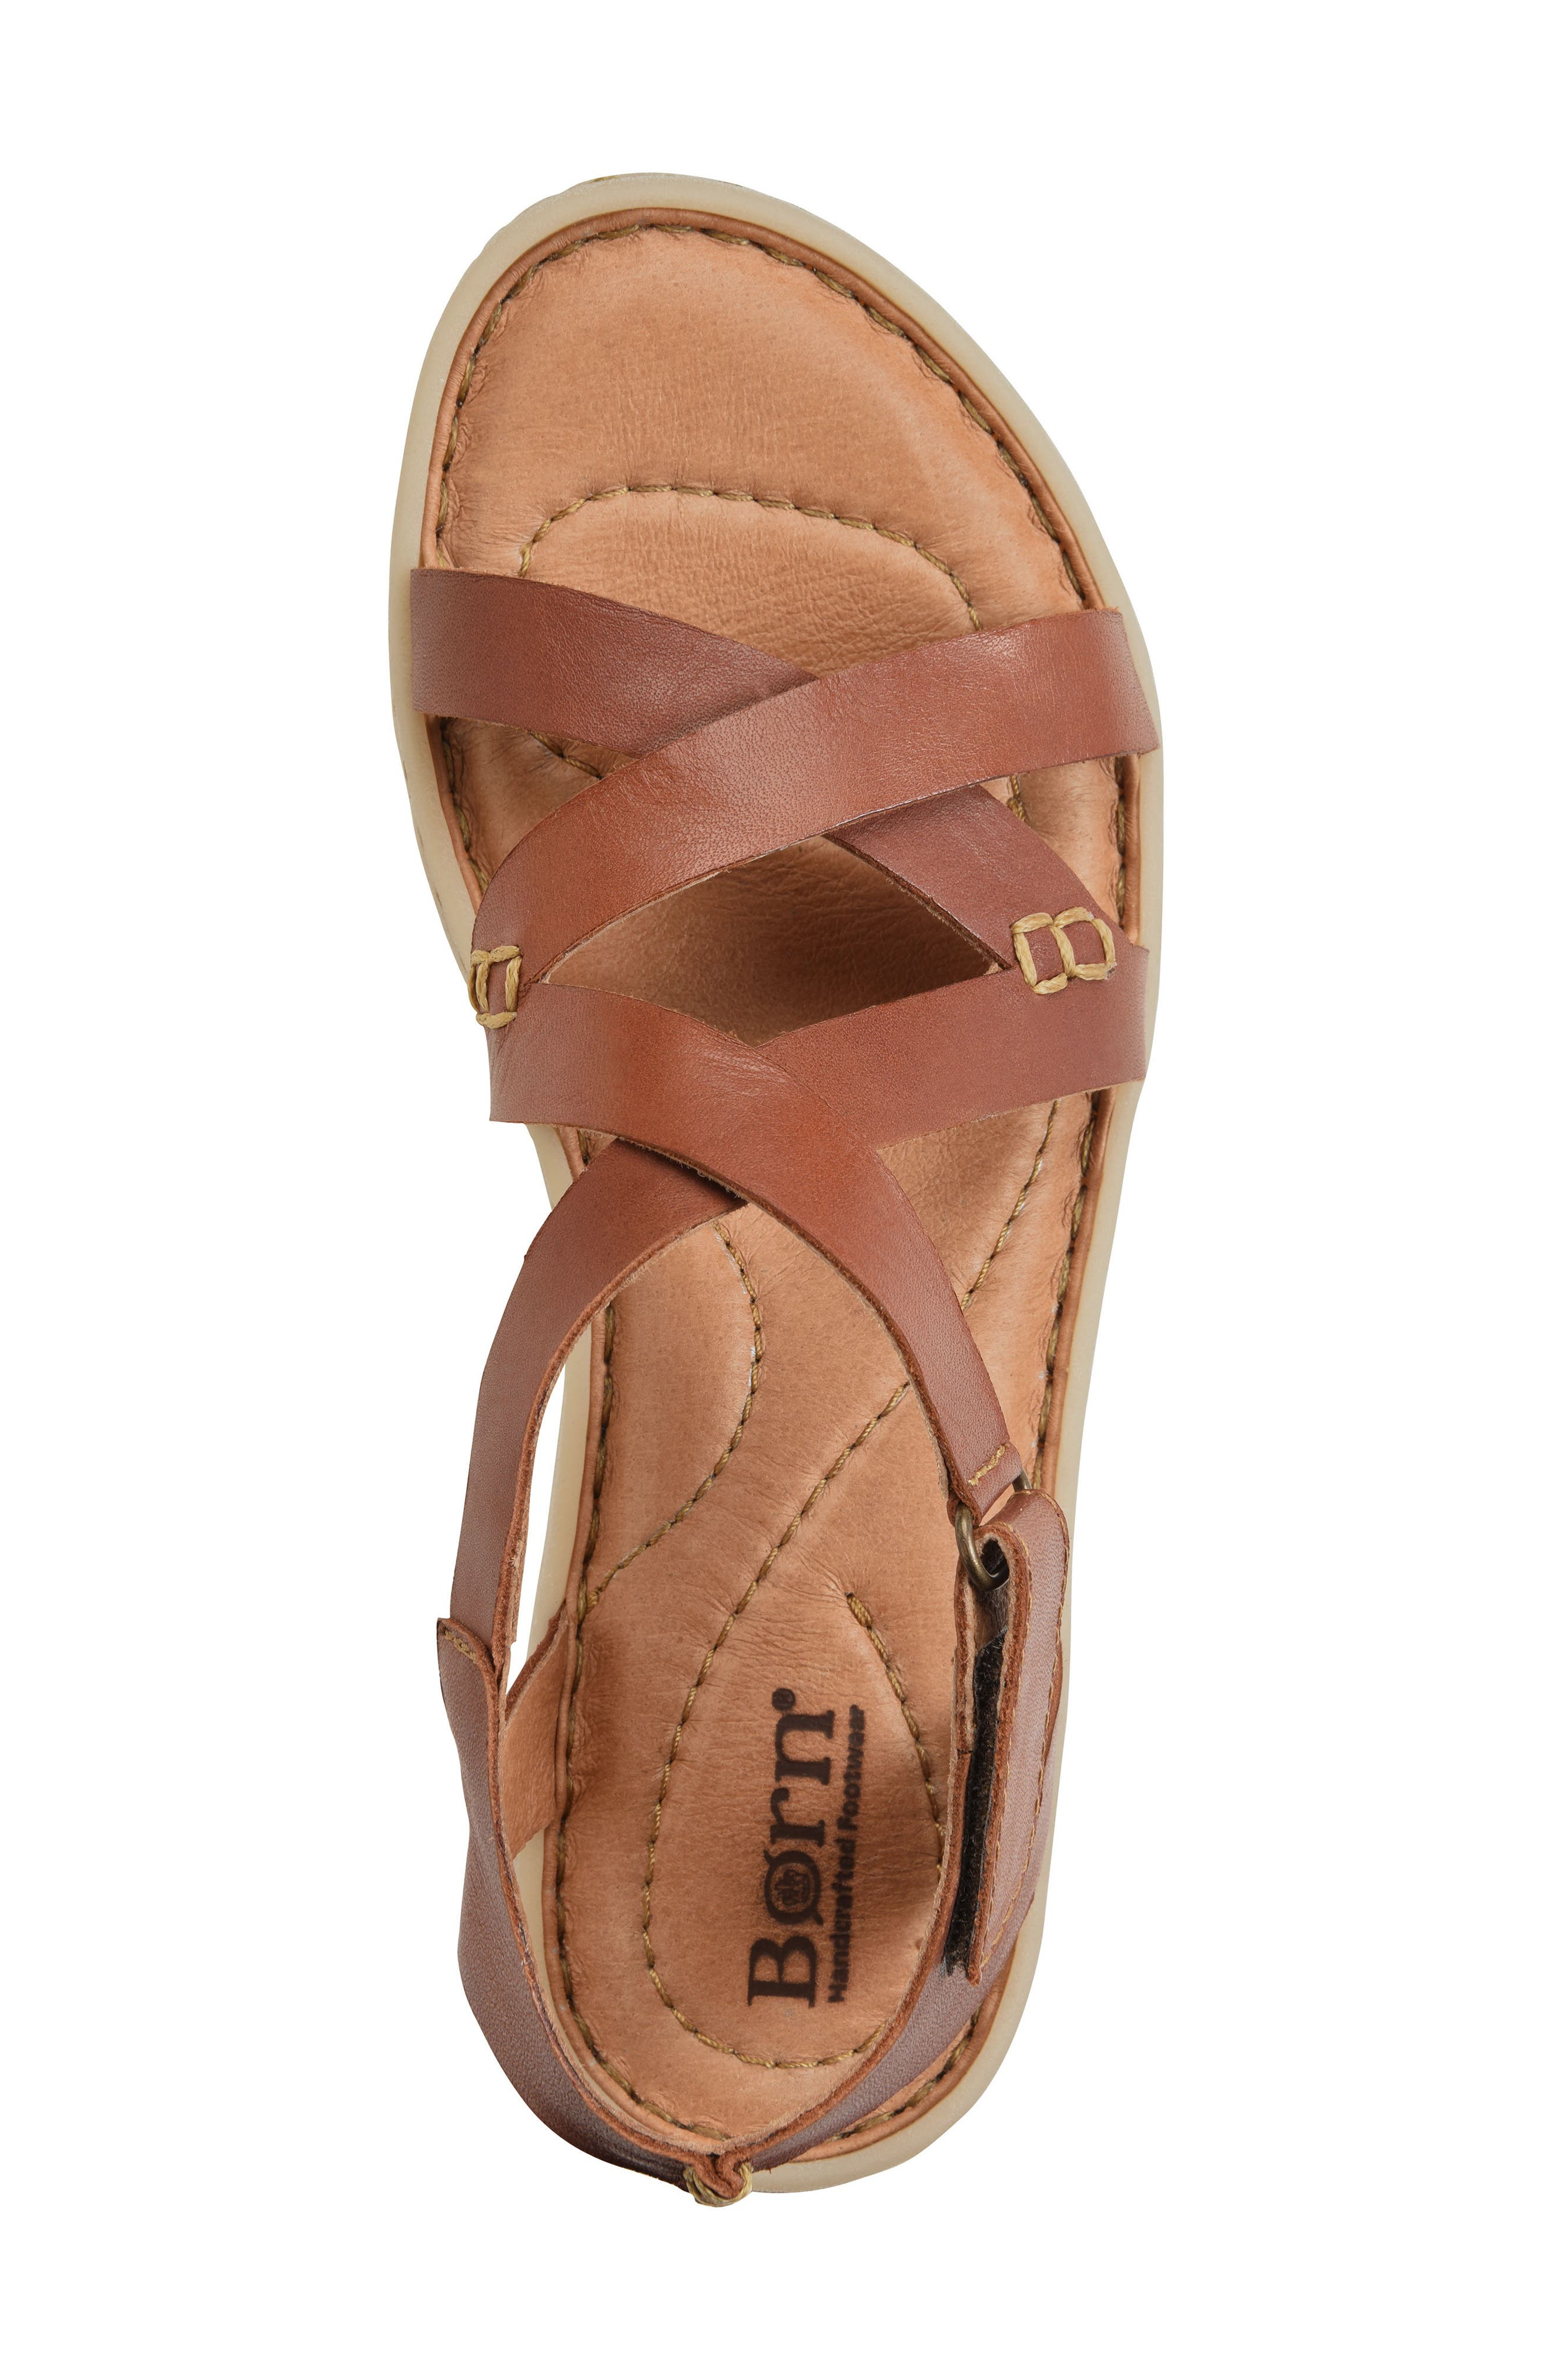 Trinidad Sandal,                             Alternate thumbnail 5, color,                             Brown Leather